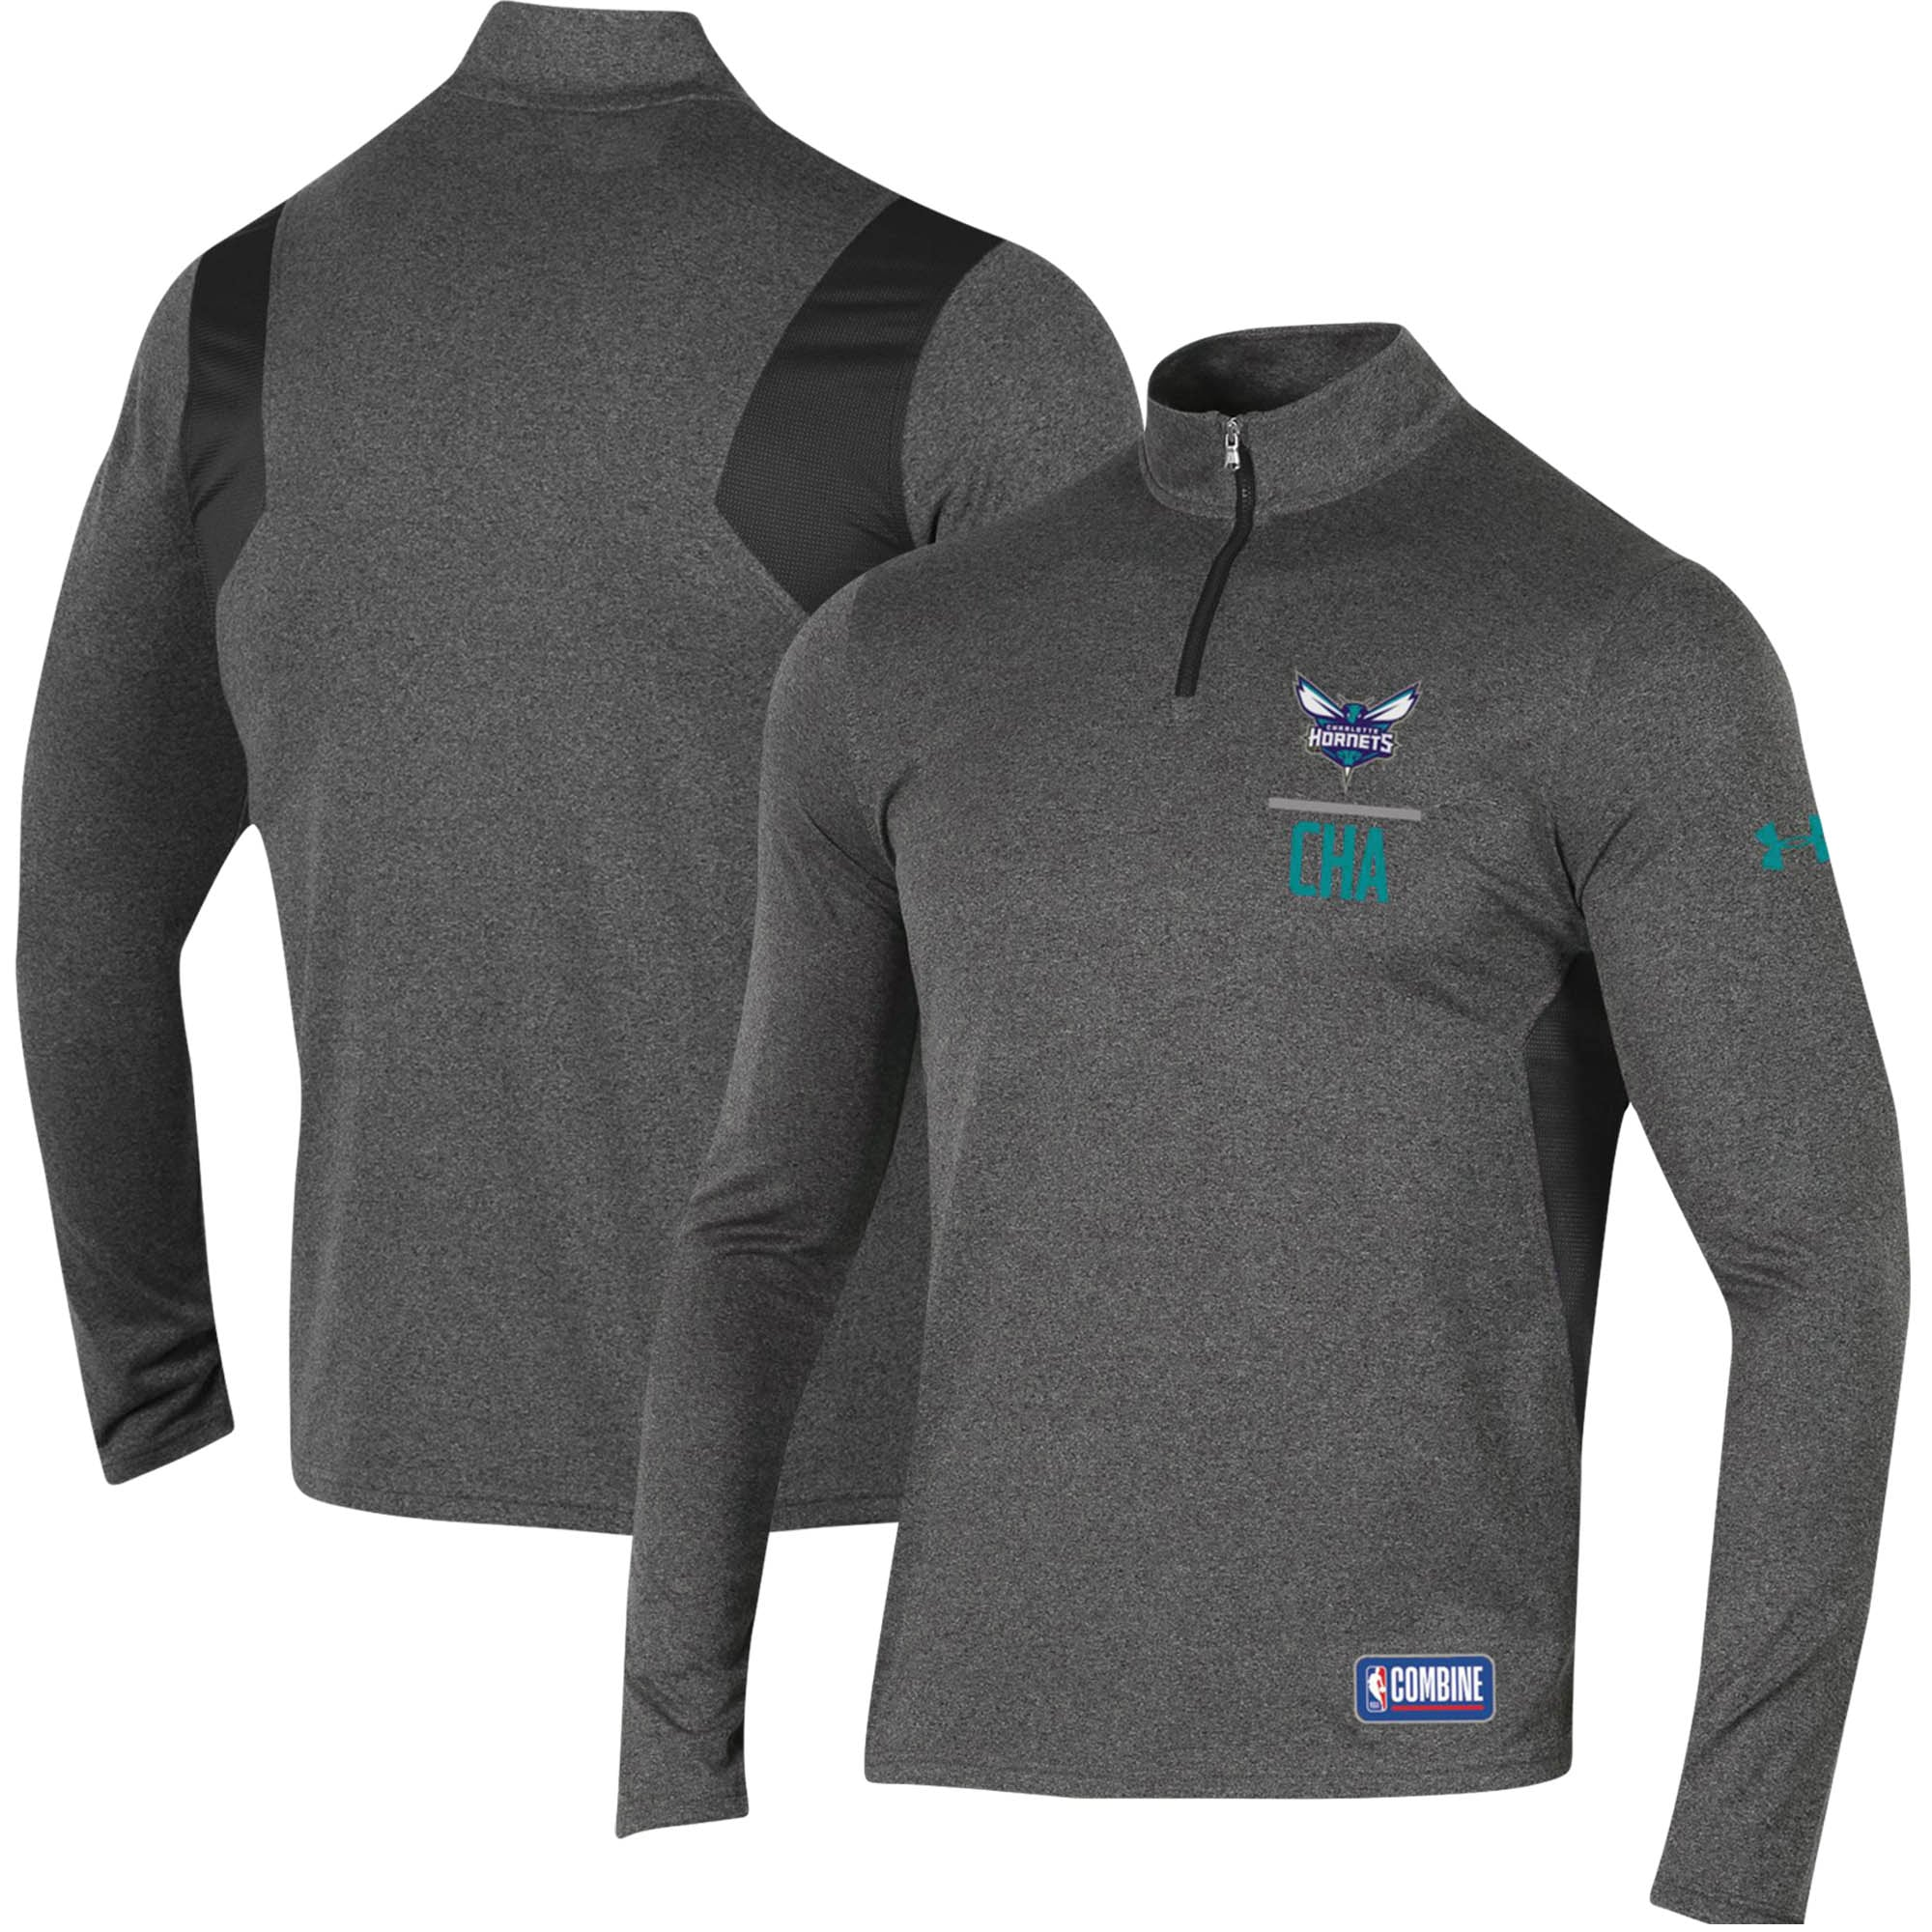 Charlotte Hornets Under Armour Combine Authentic Season Tech Quarter-Zip Pullover Jacket - Heathered Charcoal